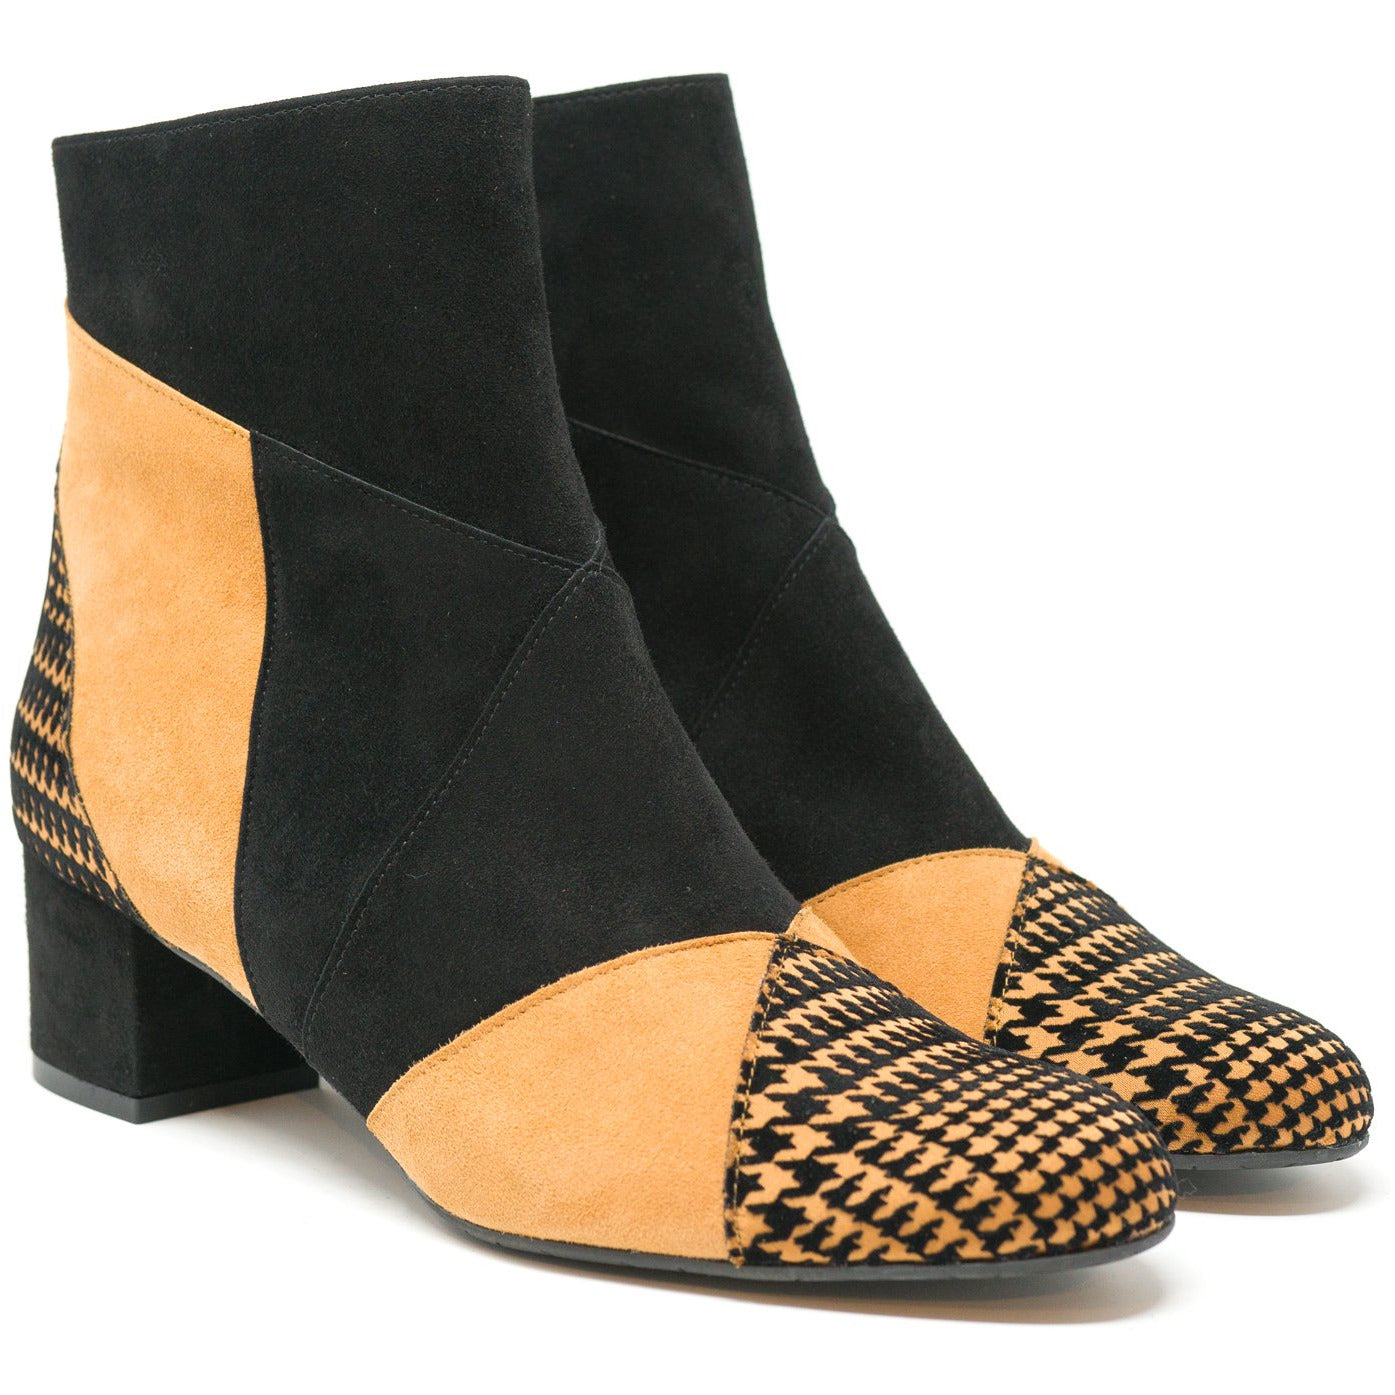 MIL1068 T50 Women Booties - New Fall Winter 2019-2020 Collection